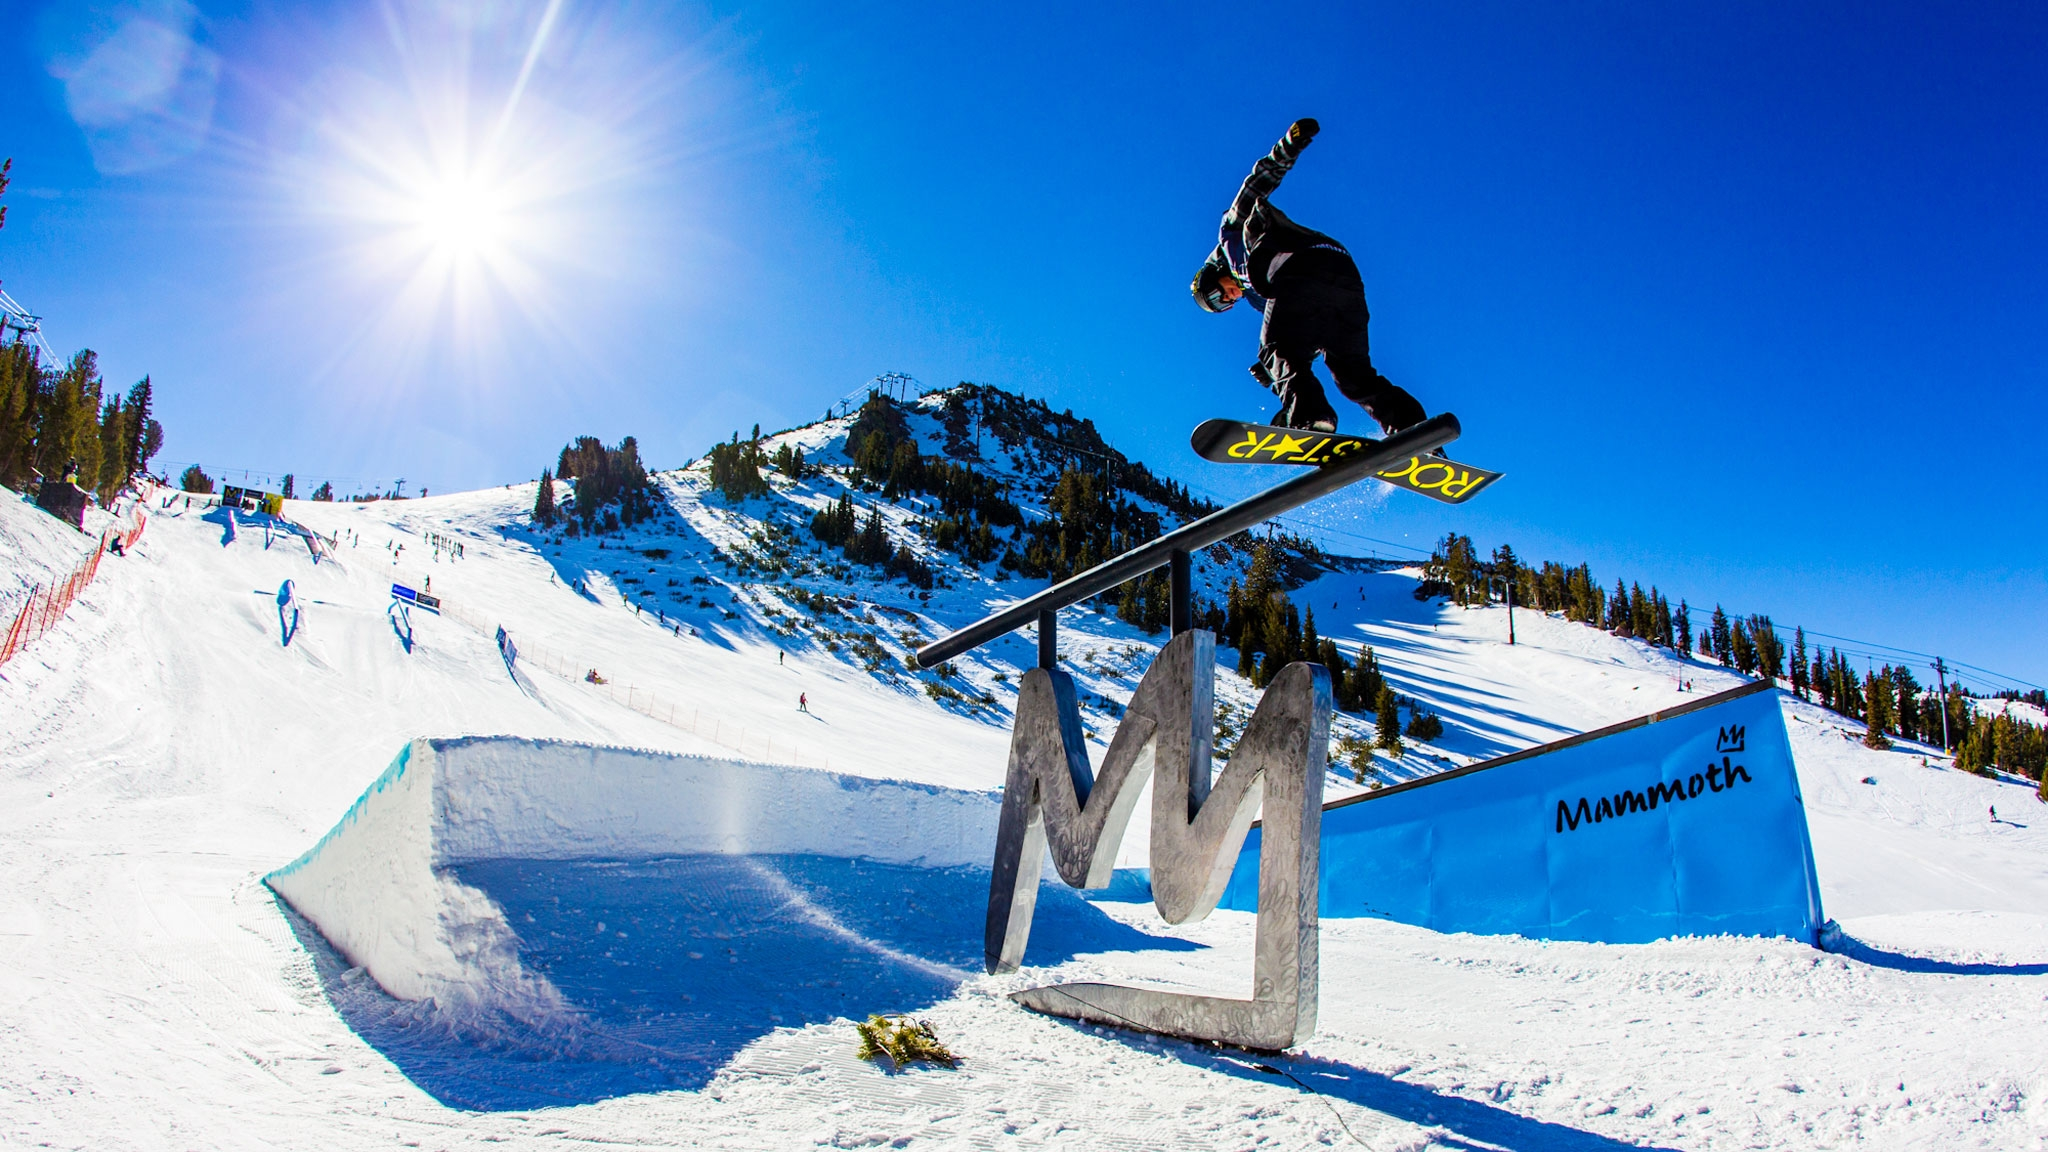 2048x1152 - Snowboarding Wallpapers 20